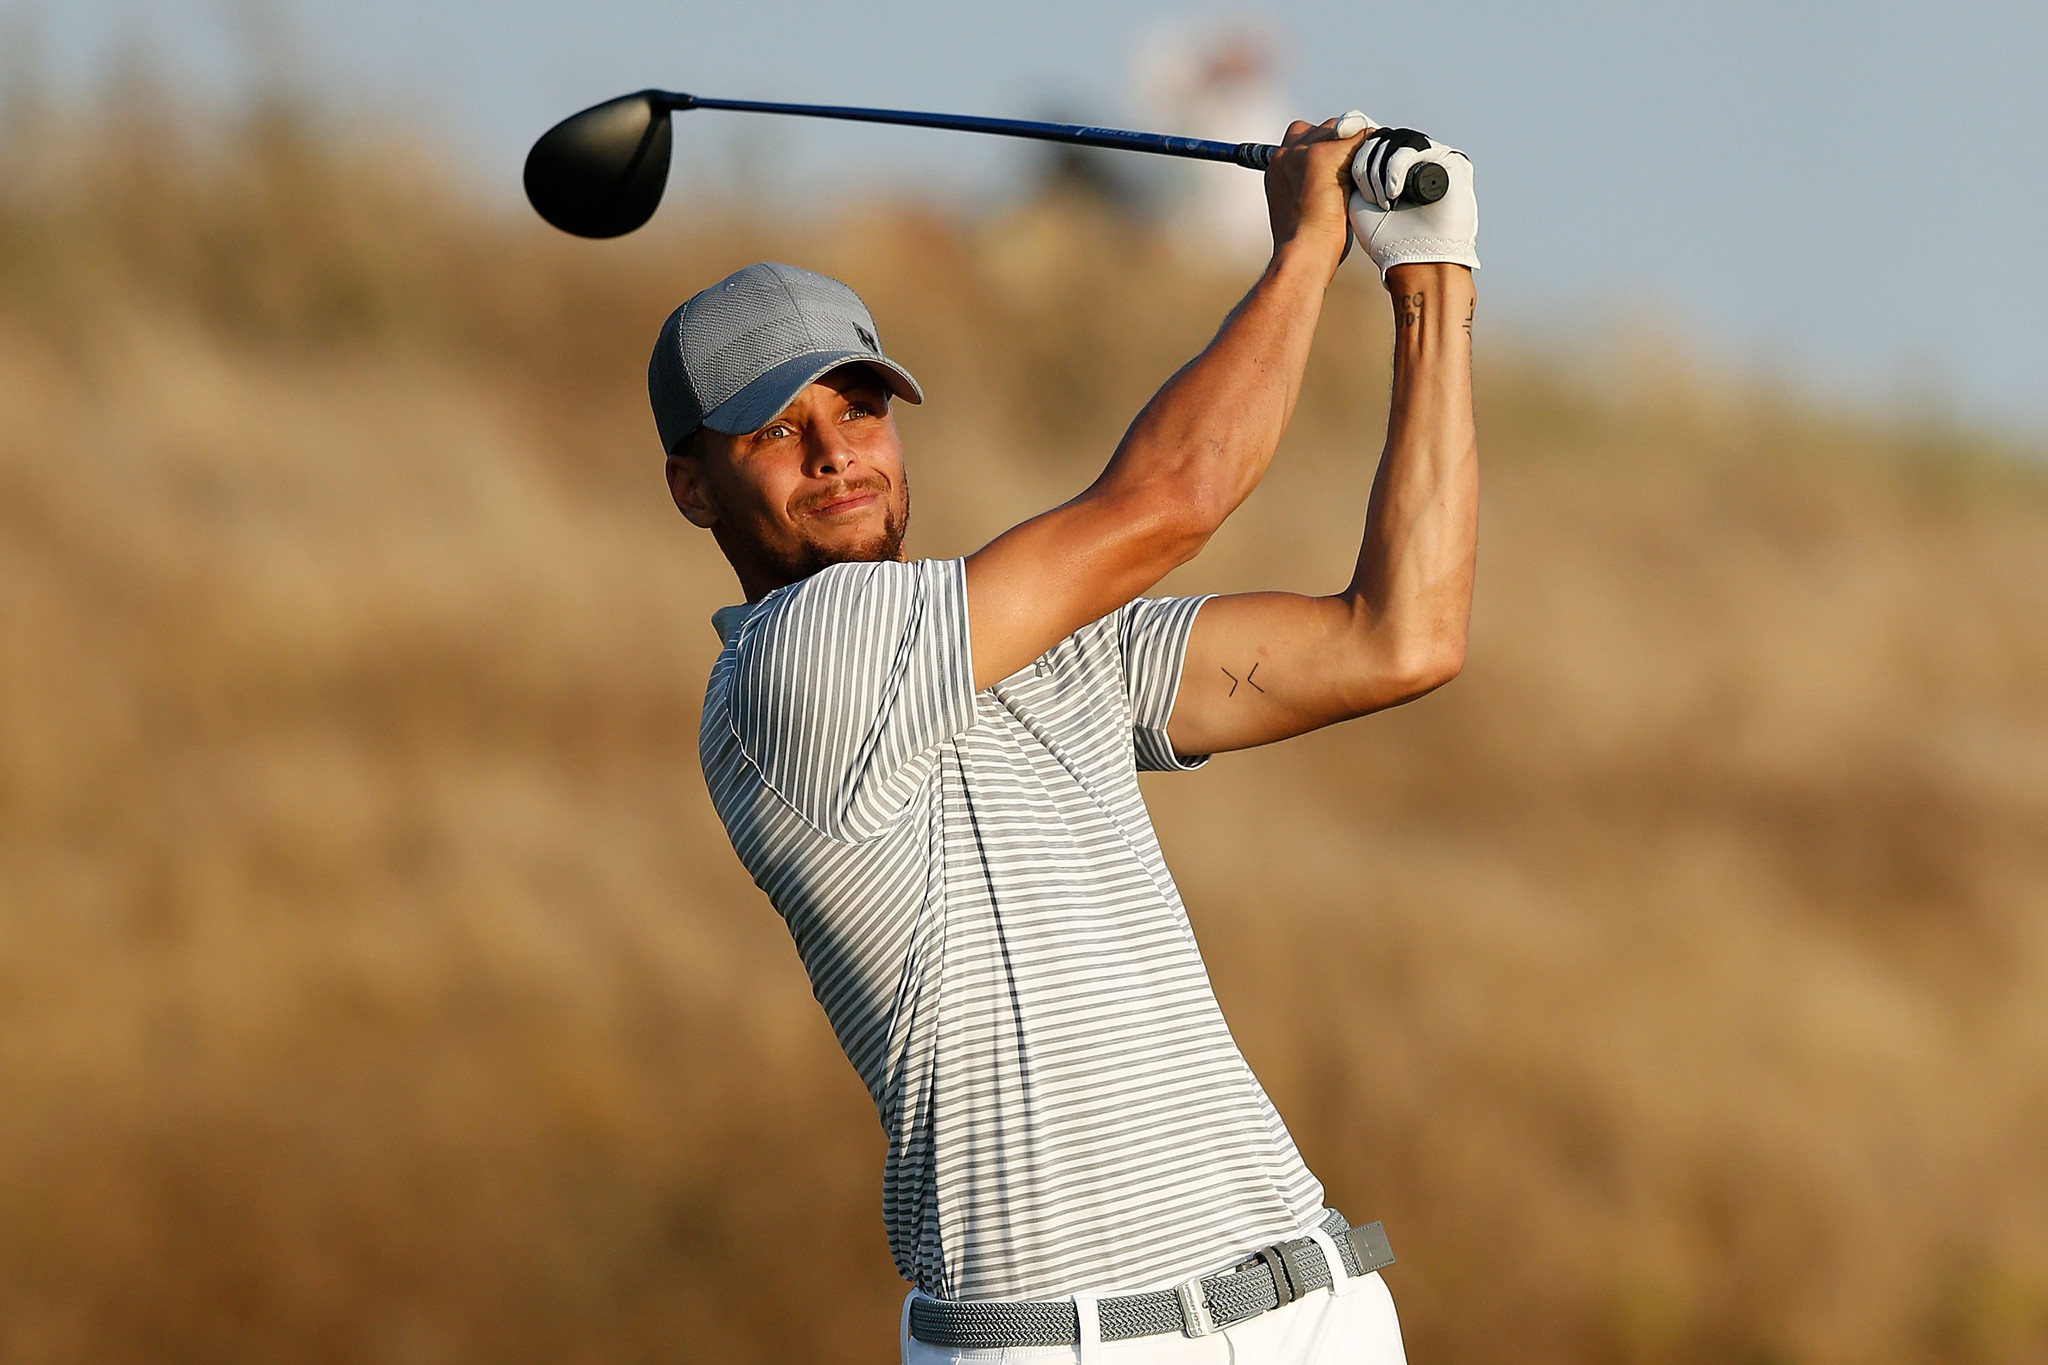 f6355b232640 Stephen Curry misses cut but earns admiration in pro golf debut ...